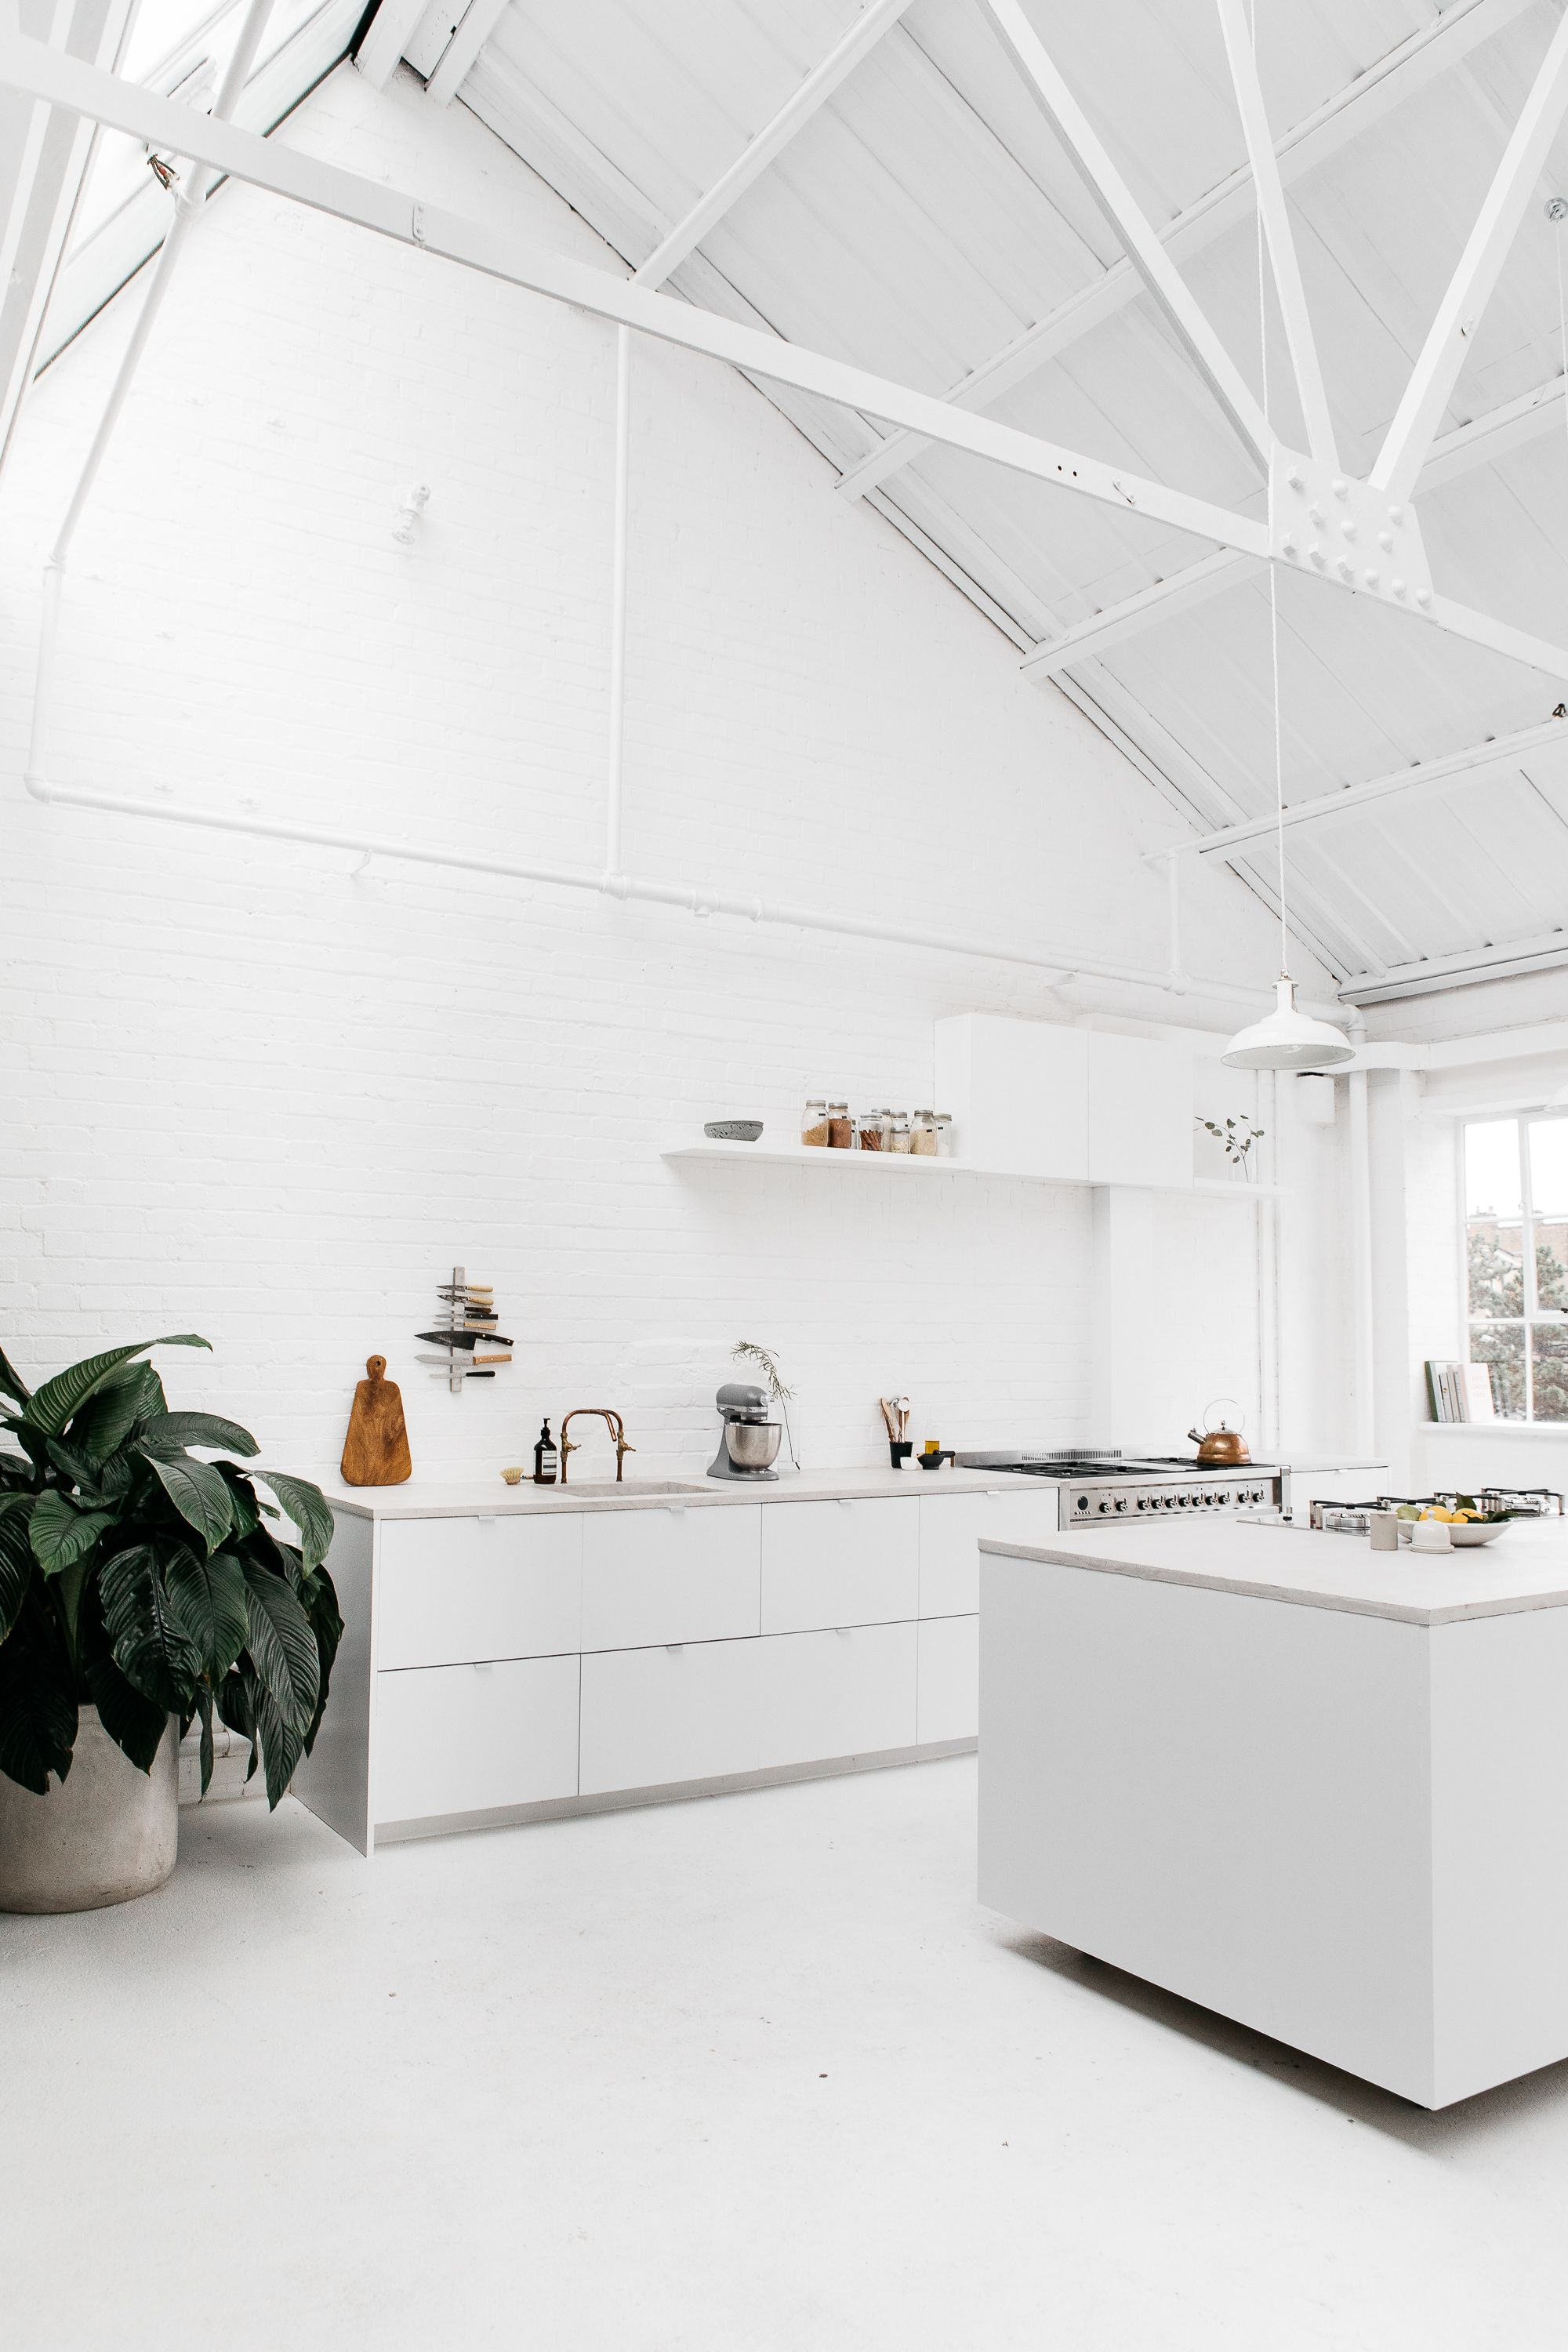 Studio 8a by rye london is a kitchen and photography studio located in a renovated warehouse in east london upon entering the studio one is first